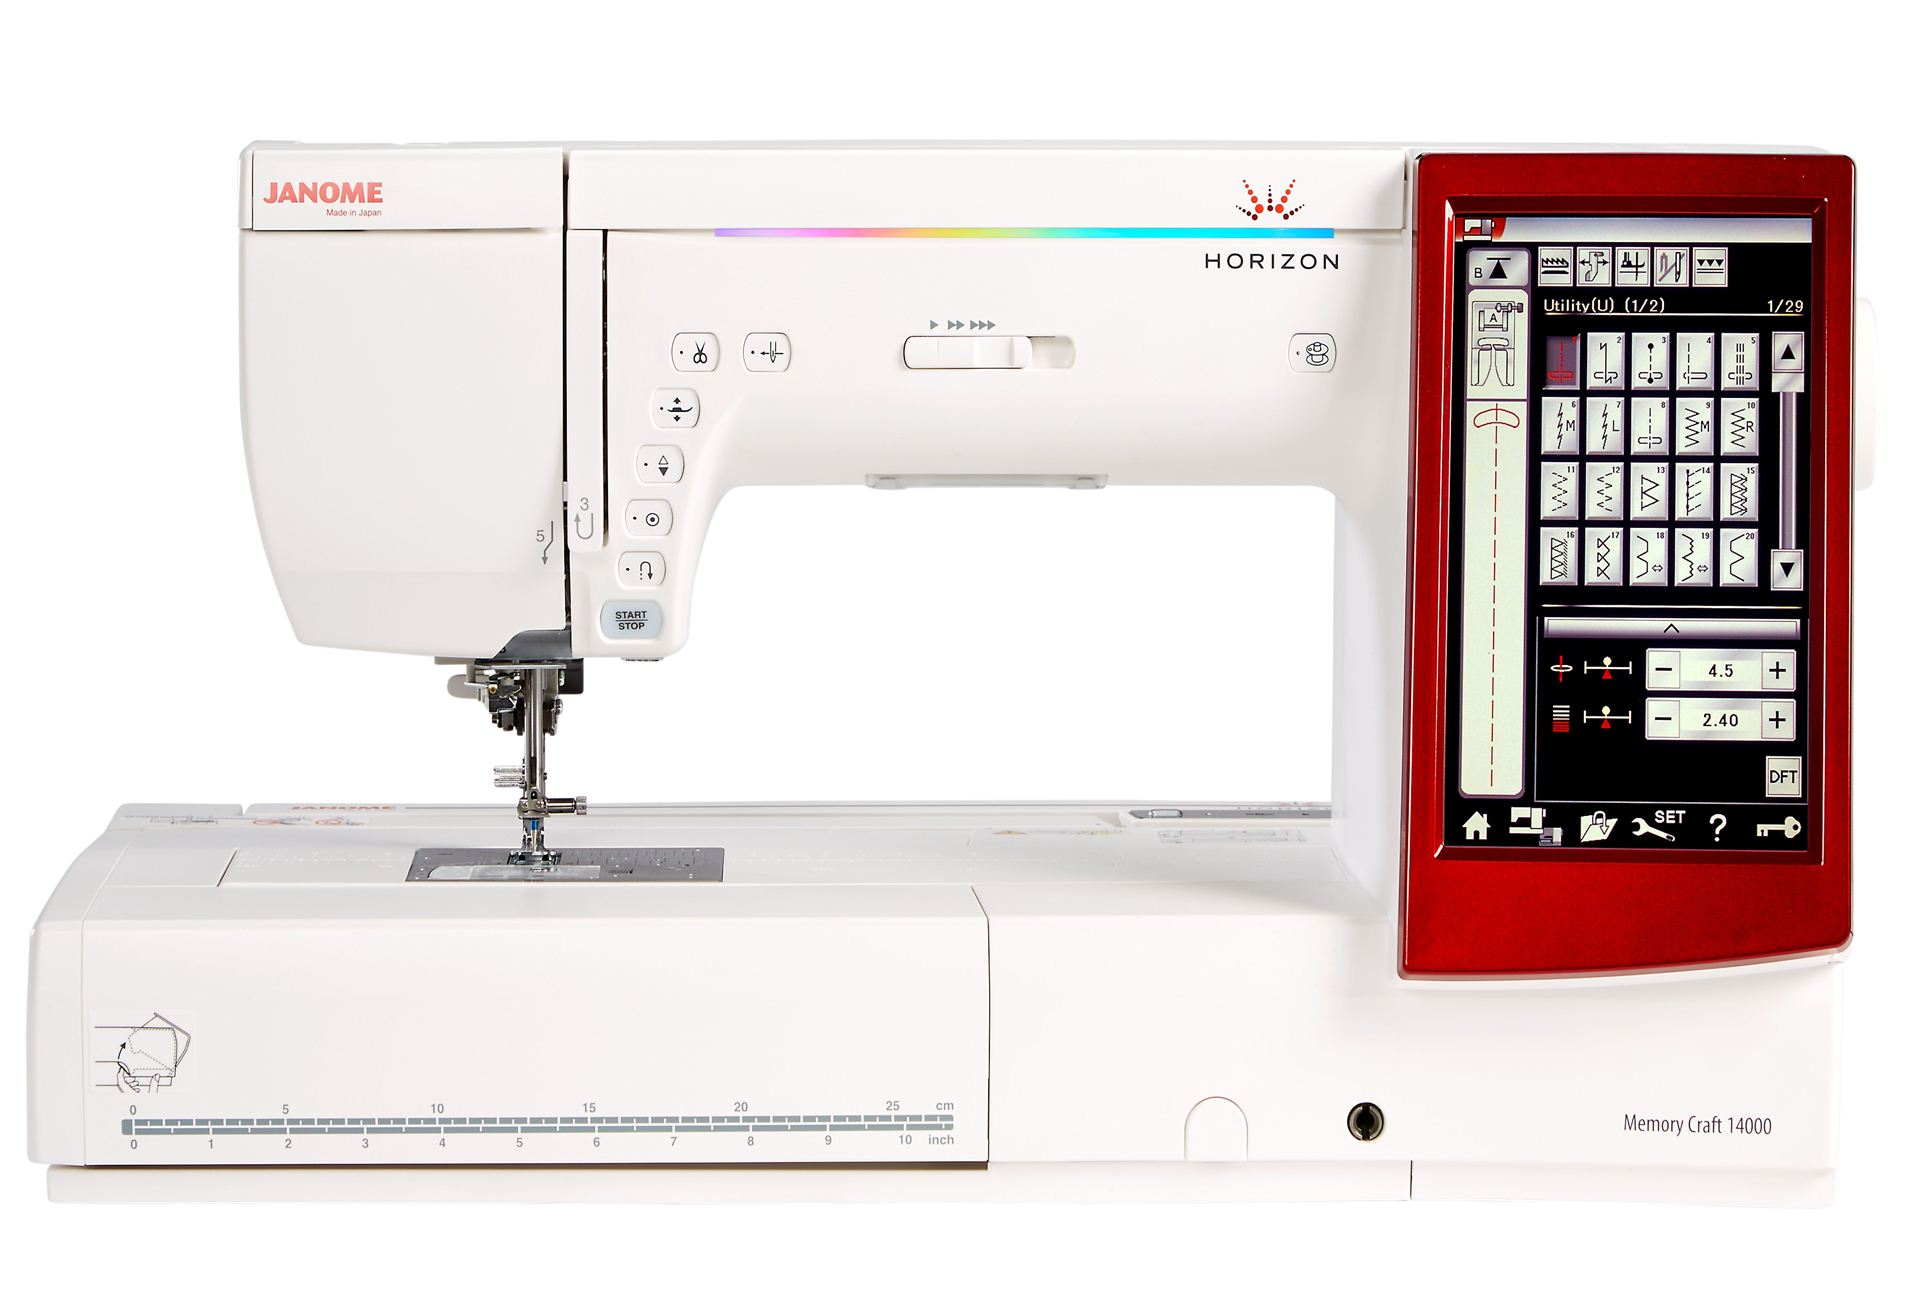 best image quilt machine sewing happy of janome quilting me makes reviews